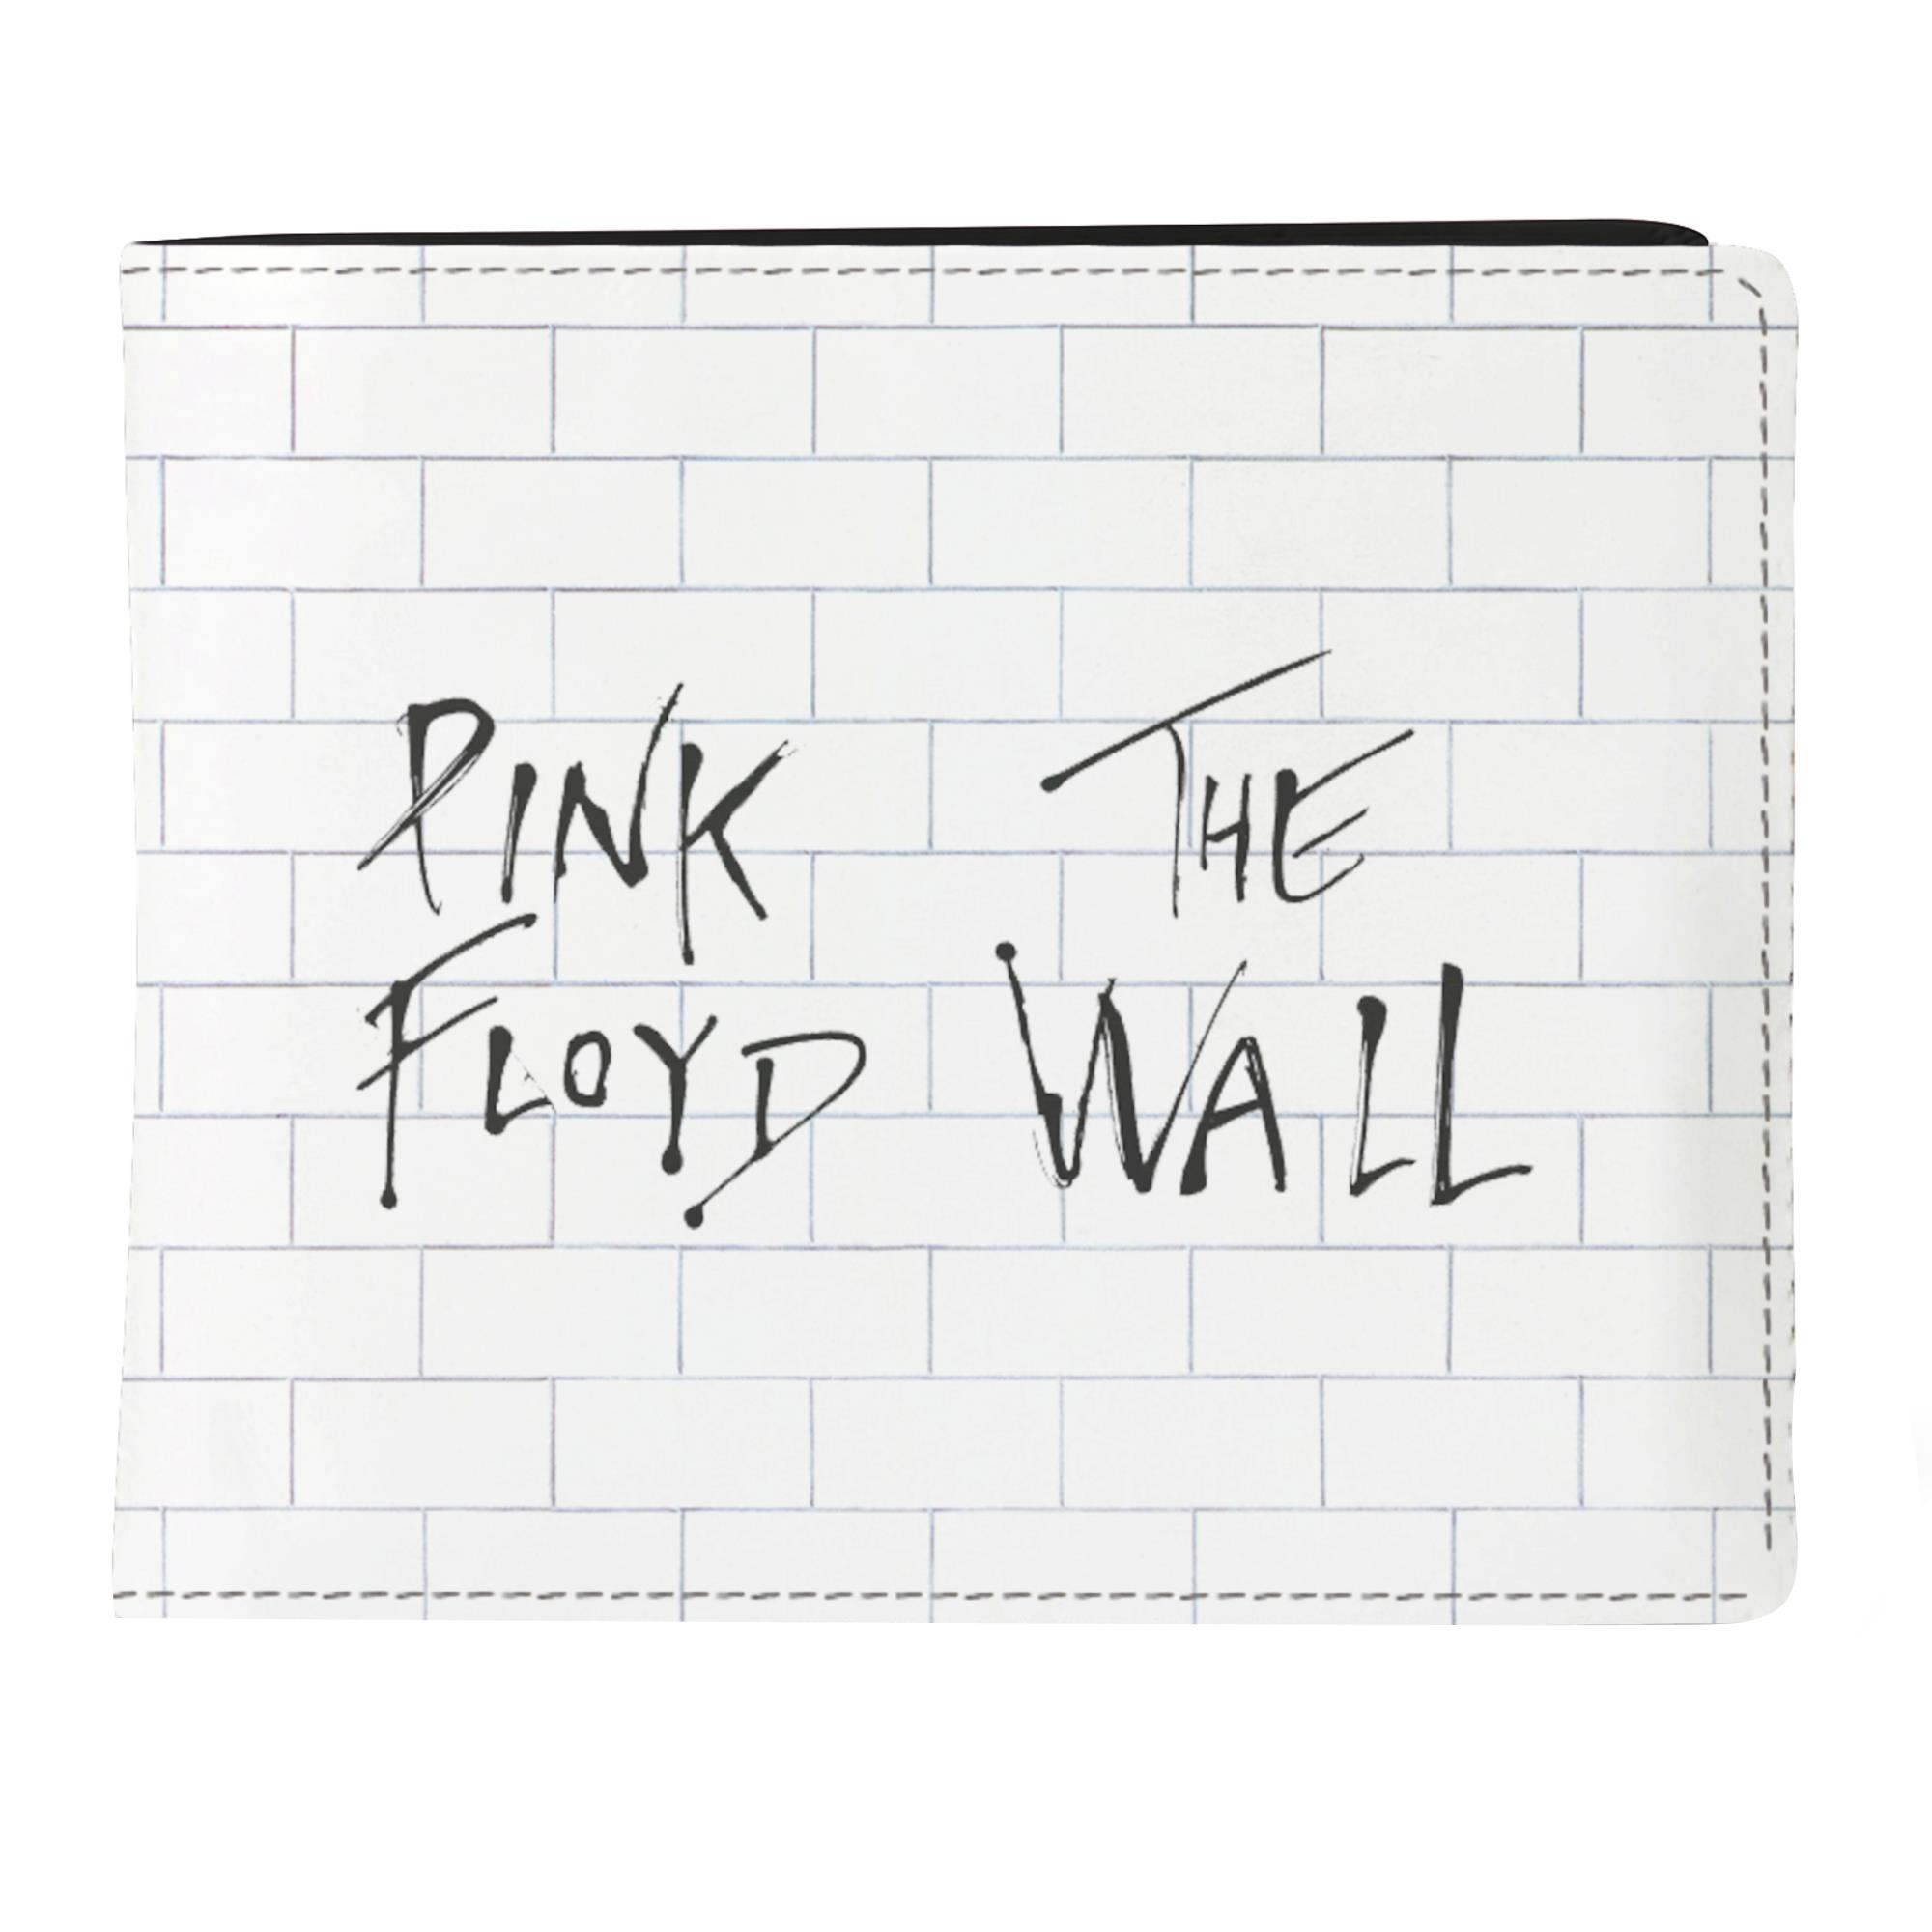 The Wall Wallet